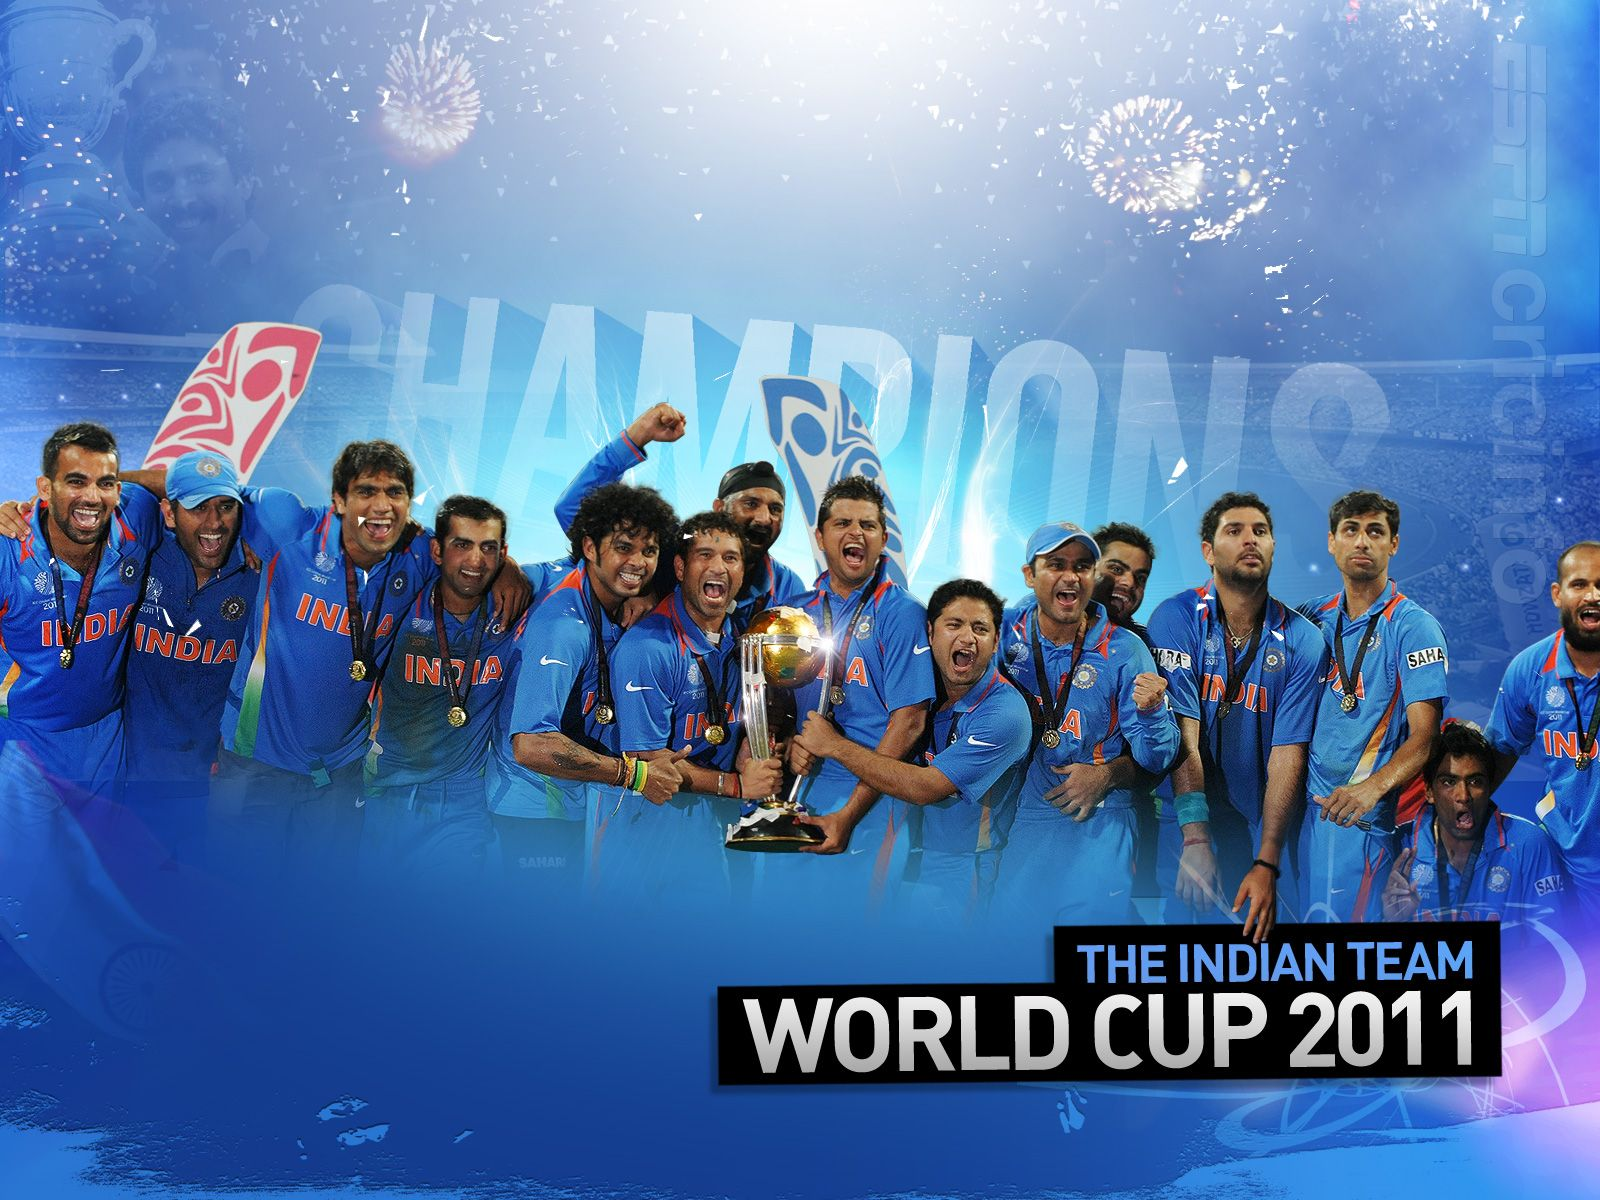 Team India D Team Wallpaper Cricket Wallpapers World Cup